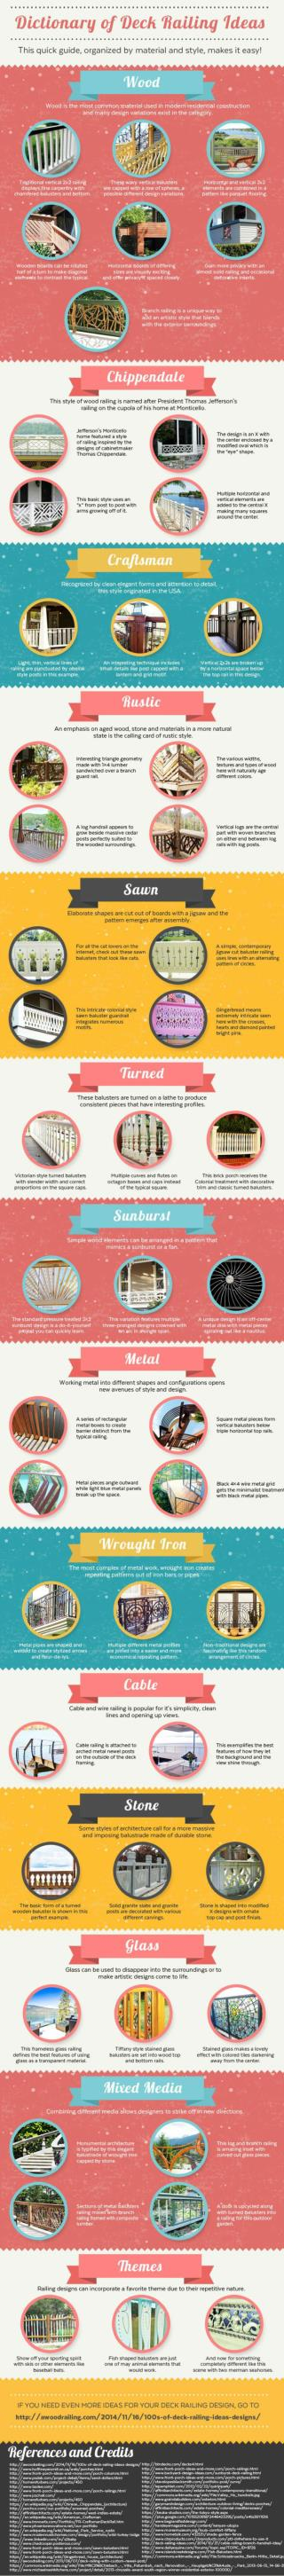 Dictionary of Deck Railing Designs